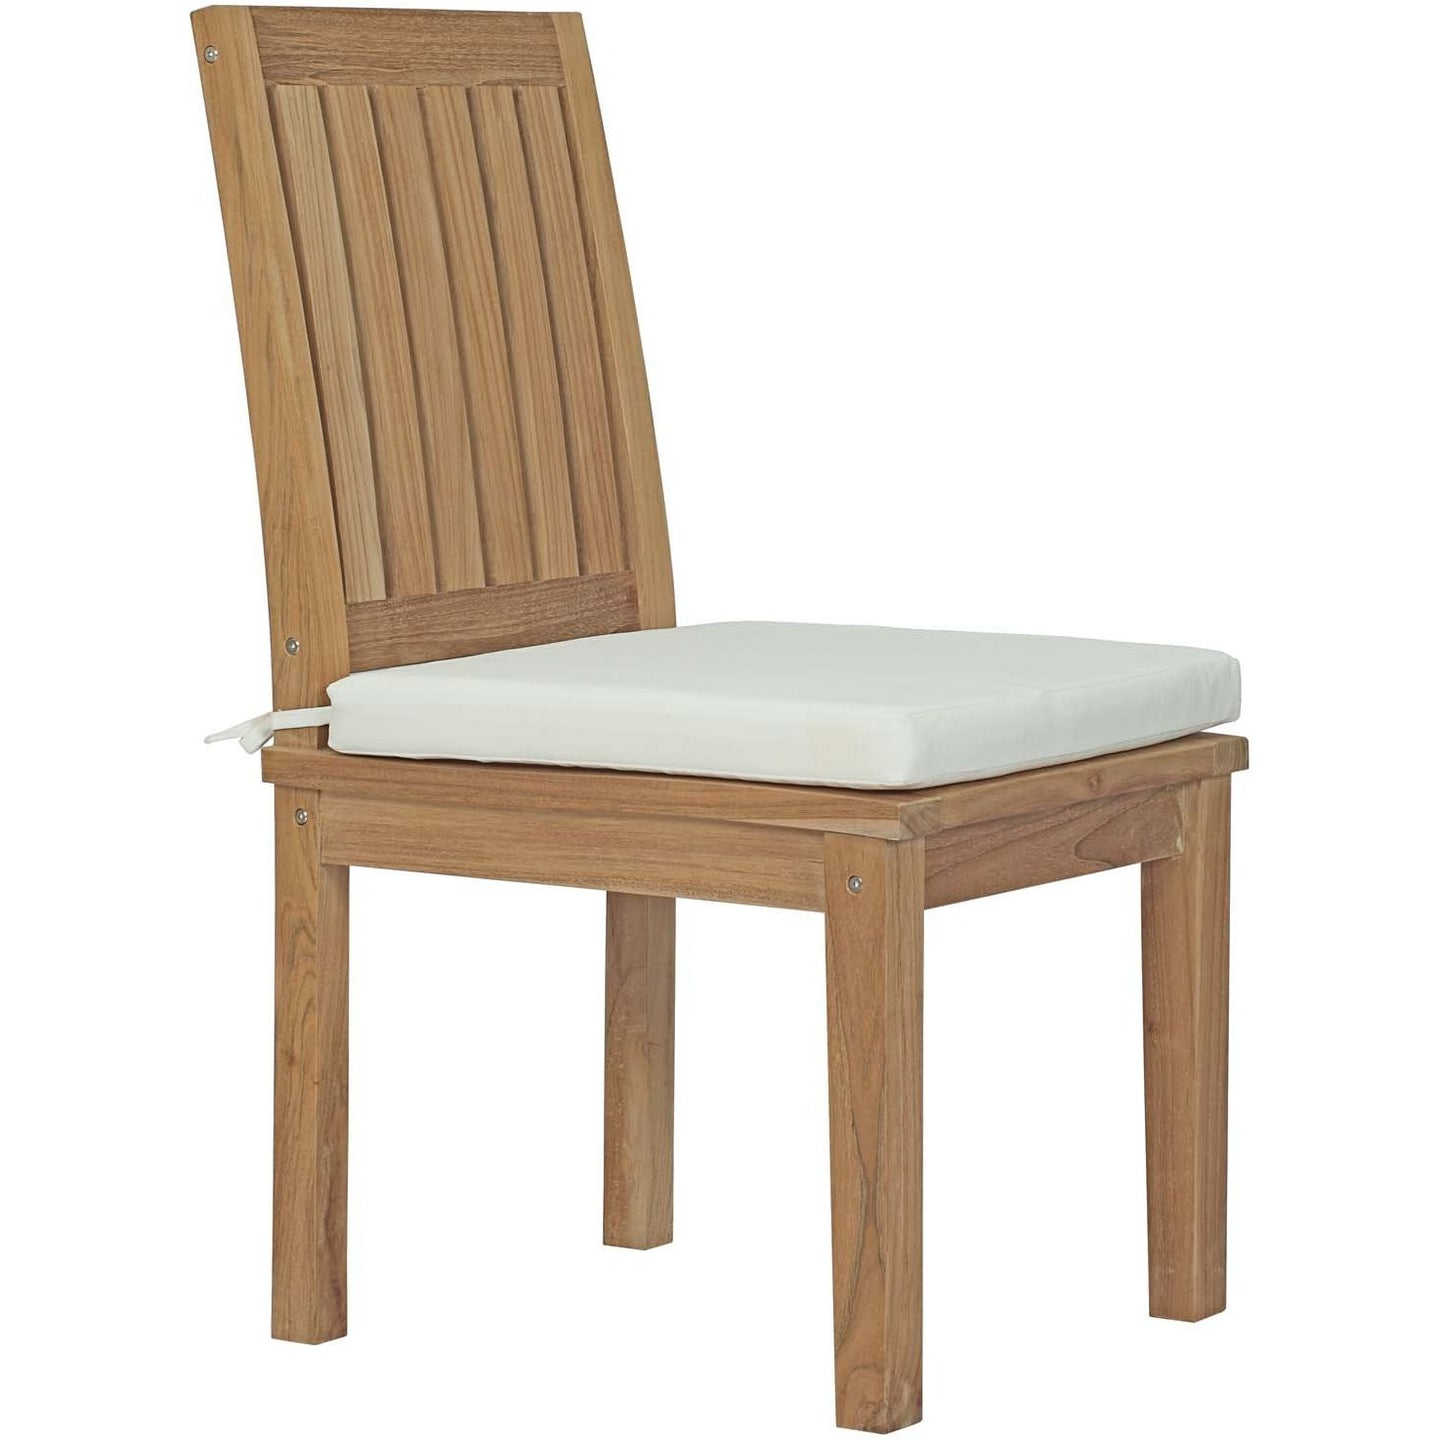 Modway Furniture Modern Marina Outdoor Patio Teak Dining Chair - EEI-2700-Minimal & Modern